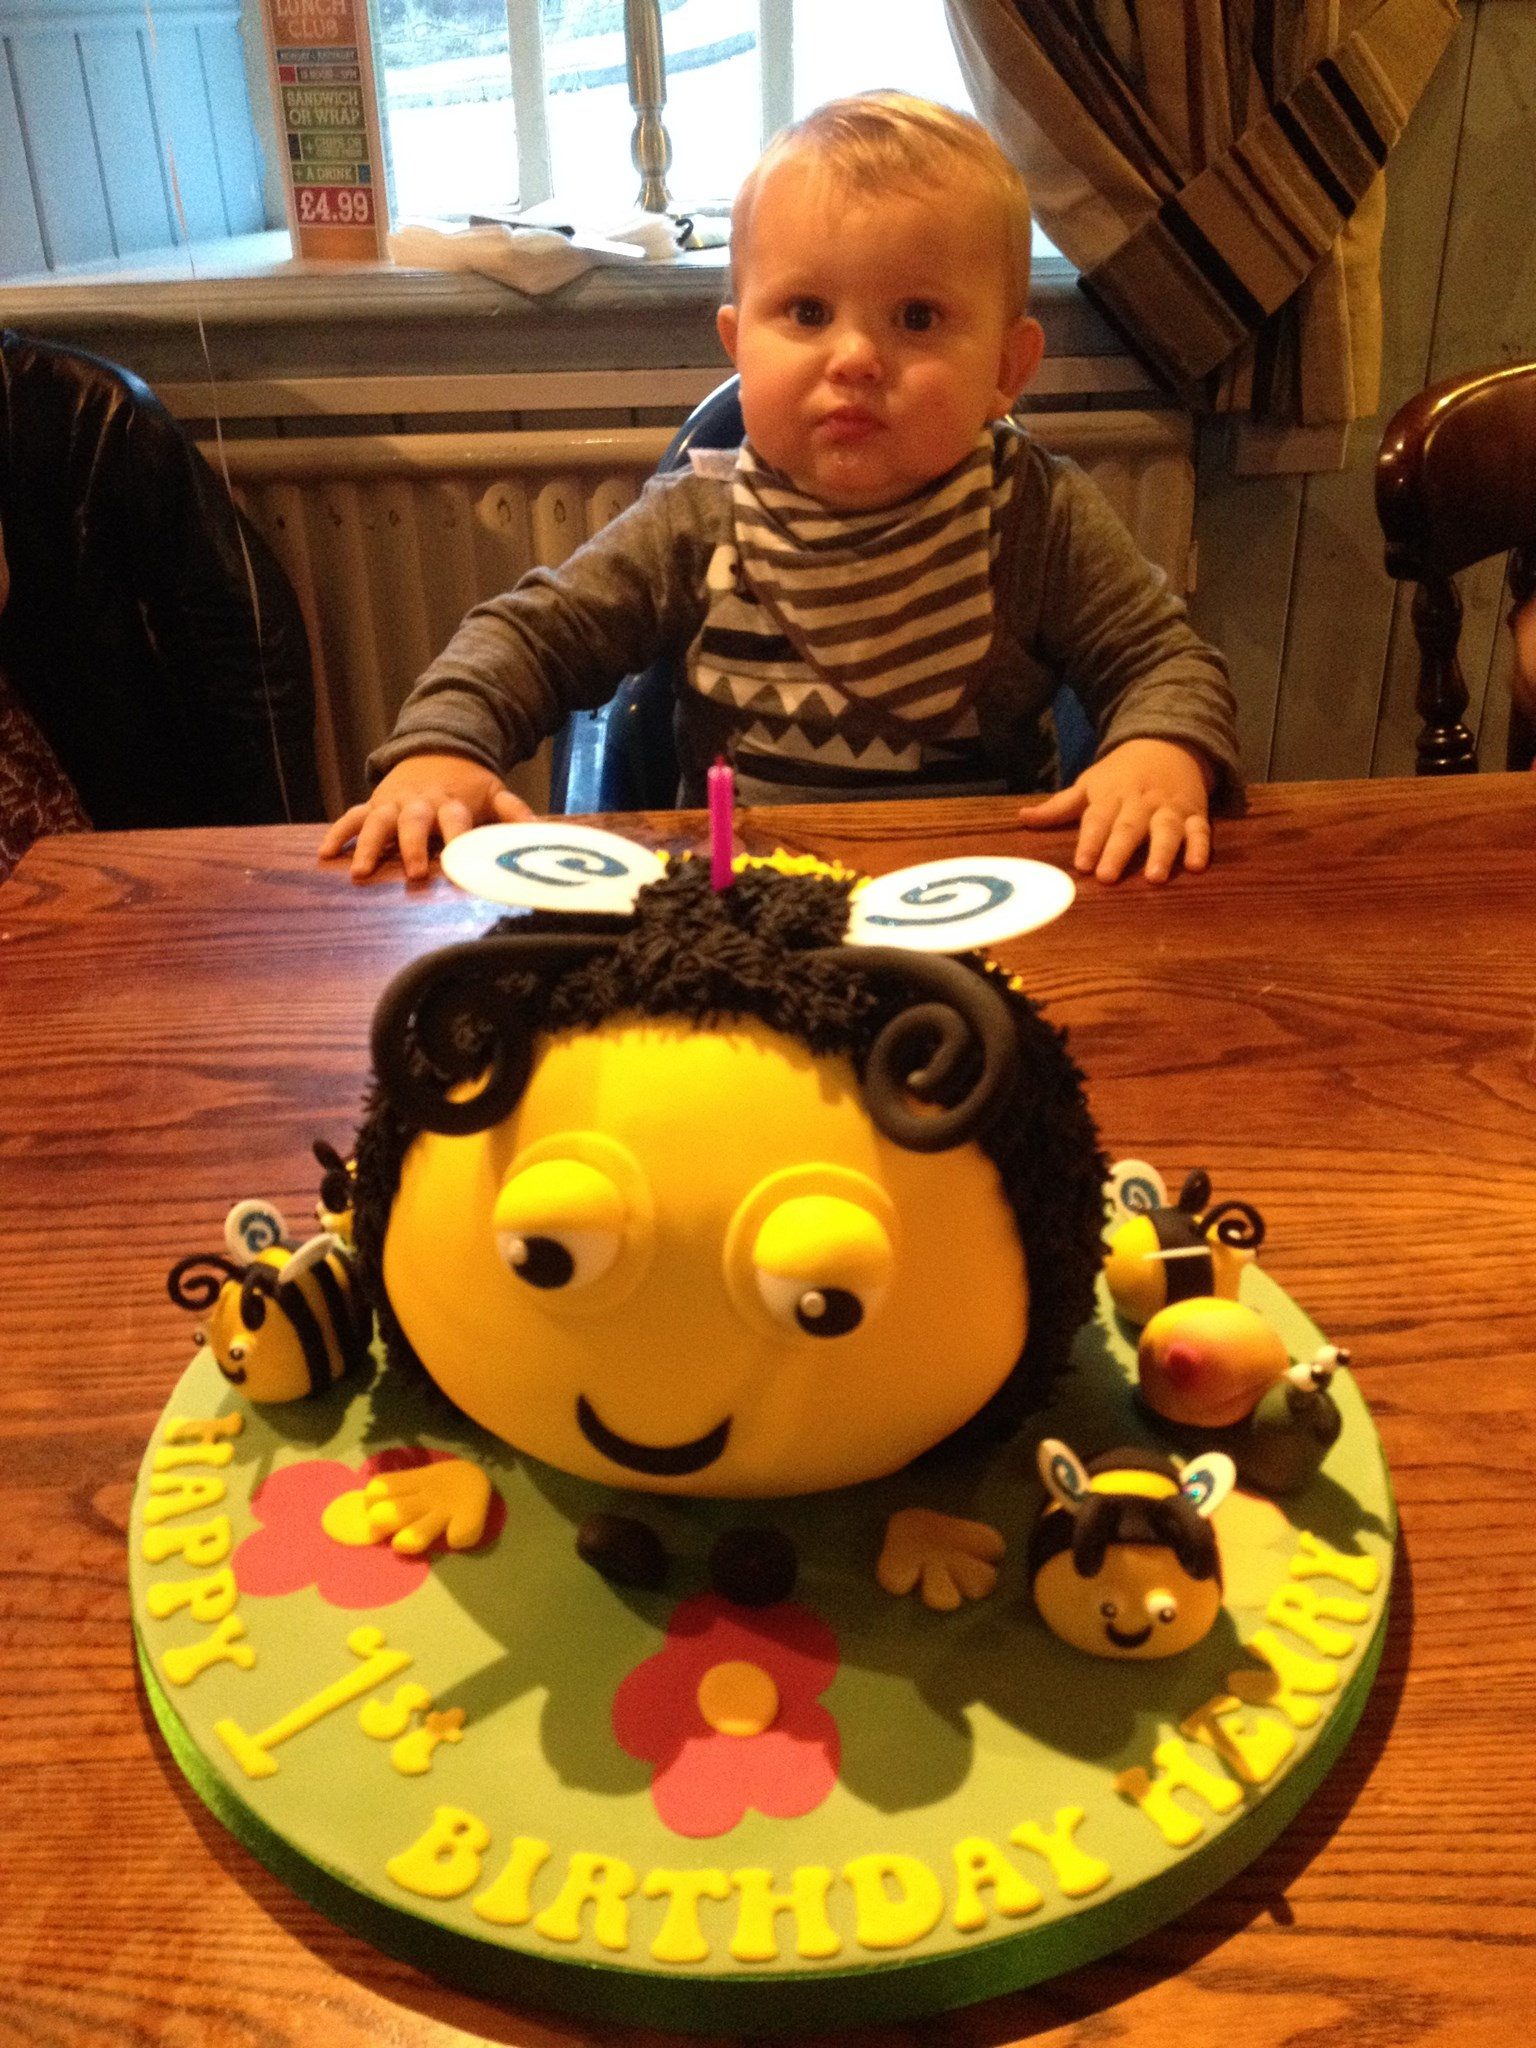 "Henry's 1st birthday. He loved ""The Hive"" so we had a Buzzbee cake made by friend Mandy."